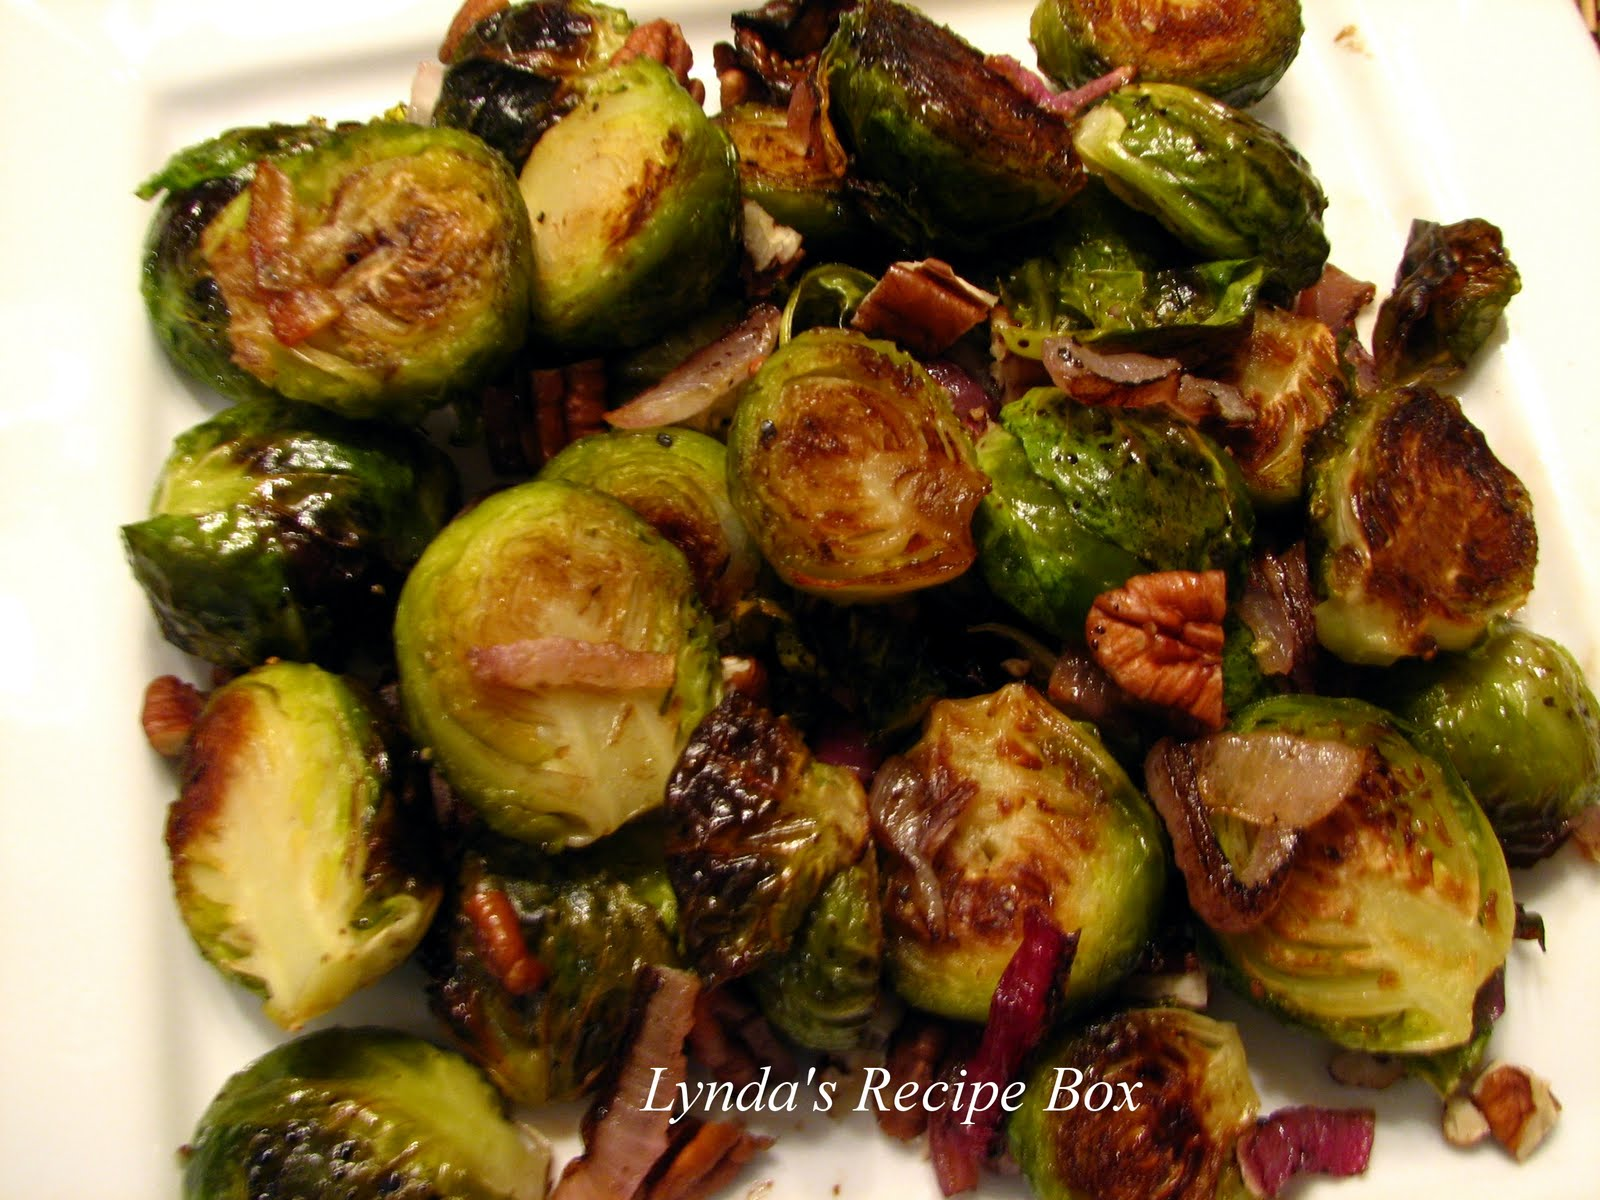 Lynda's Recipe Box: Roasted Brussels Sprouts with Balsamic Vinegar